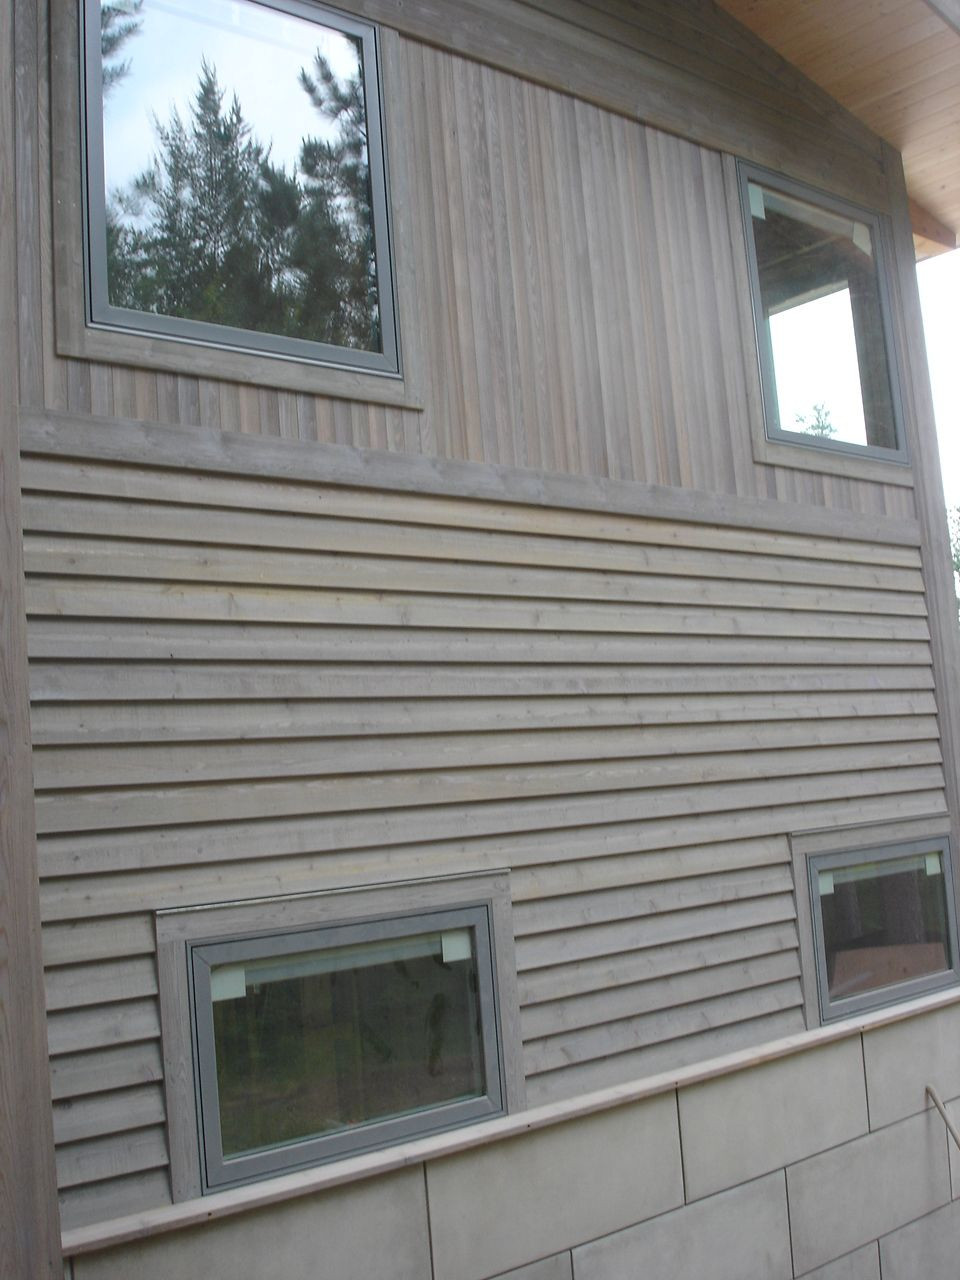 5 4 6 Tight Knot Cedar Rabbeted Bevel Cedar Siding Wood Siding Cedar